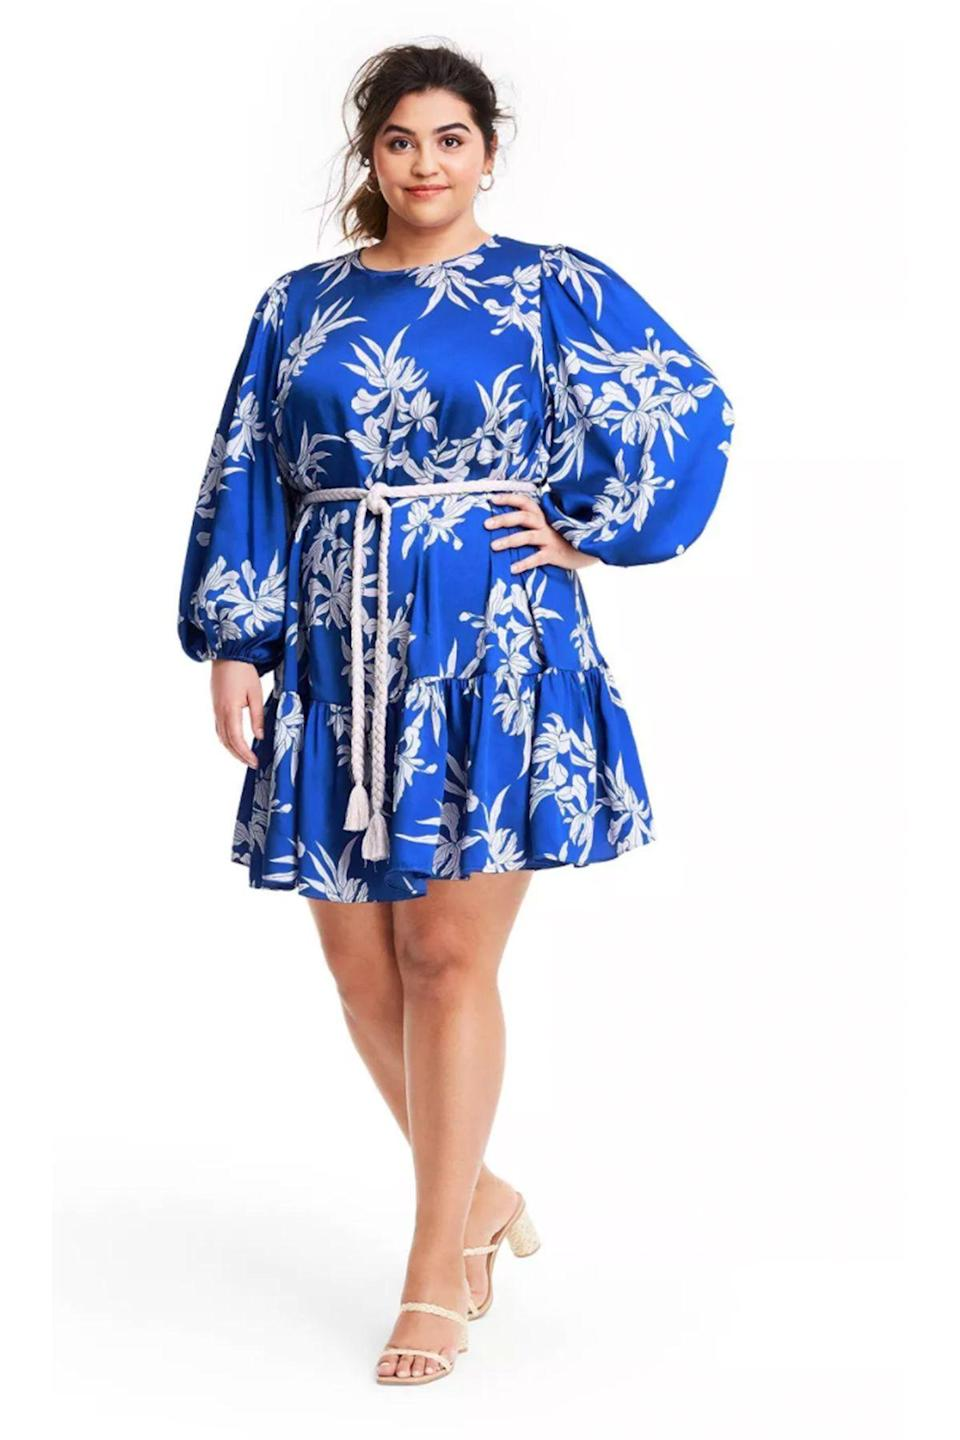 """<p><strong>ALEXIS for Target</strong></p><p>target.com</p><p><strong>$40.00</strong></p><p><a href=""""https://www.target.com/p/floral-long-sleeve-rope-belt-tiered-dress-alexis-for-target-blue/-/A-82020669"""" rel=""""nofollow noopener"""" target=""""_blank"""" data-ylk=""""slk:Shop Now"""" class=""""link rapid-noclick-resp"""">Shop Now</a></p>"""